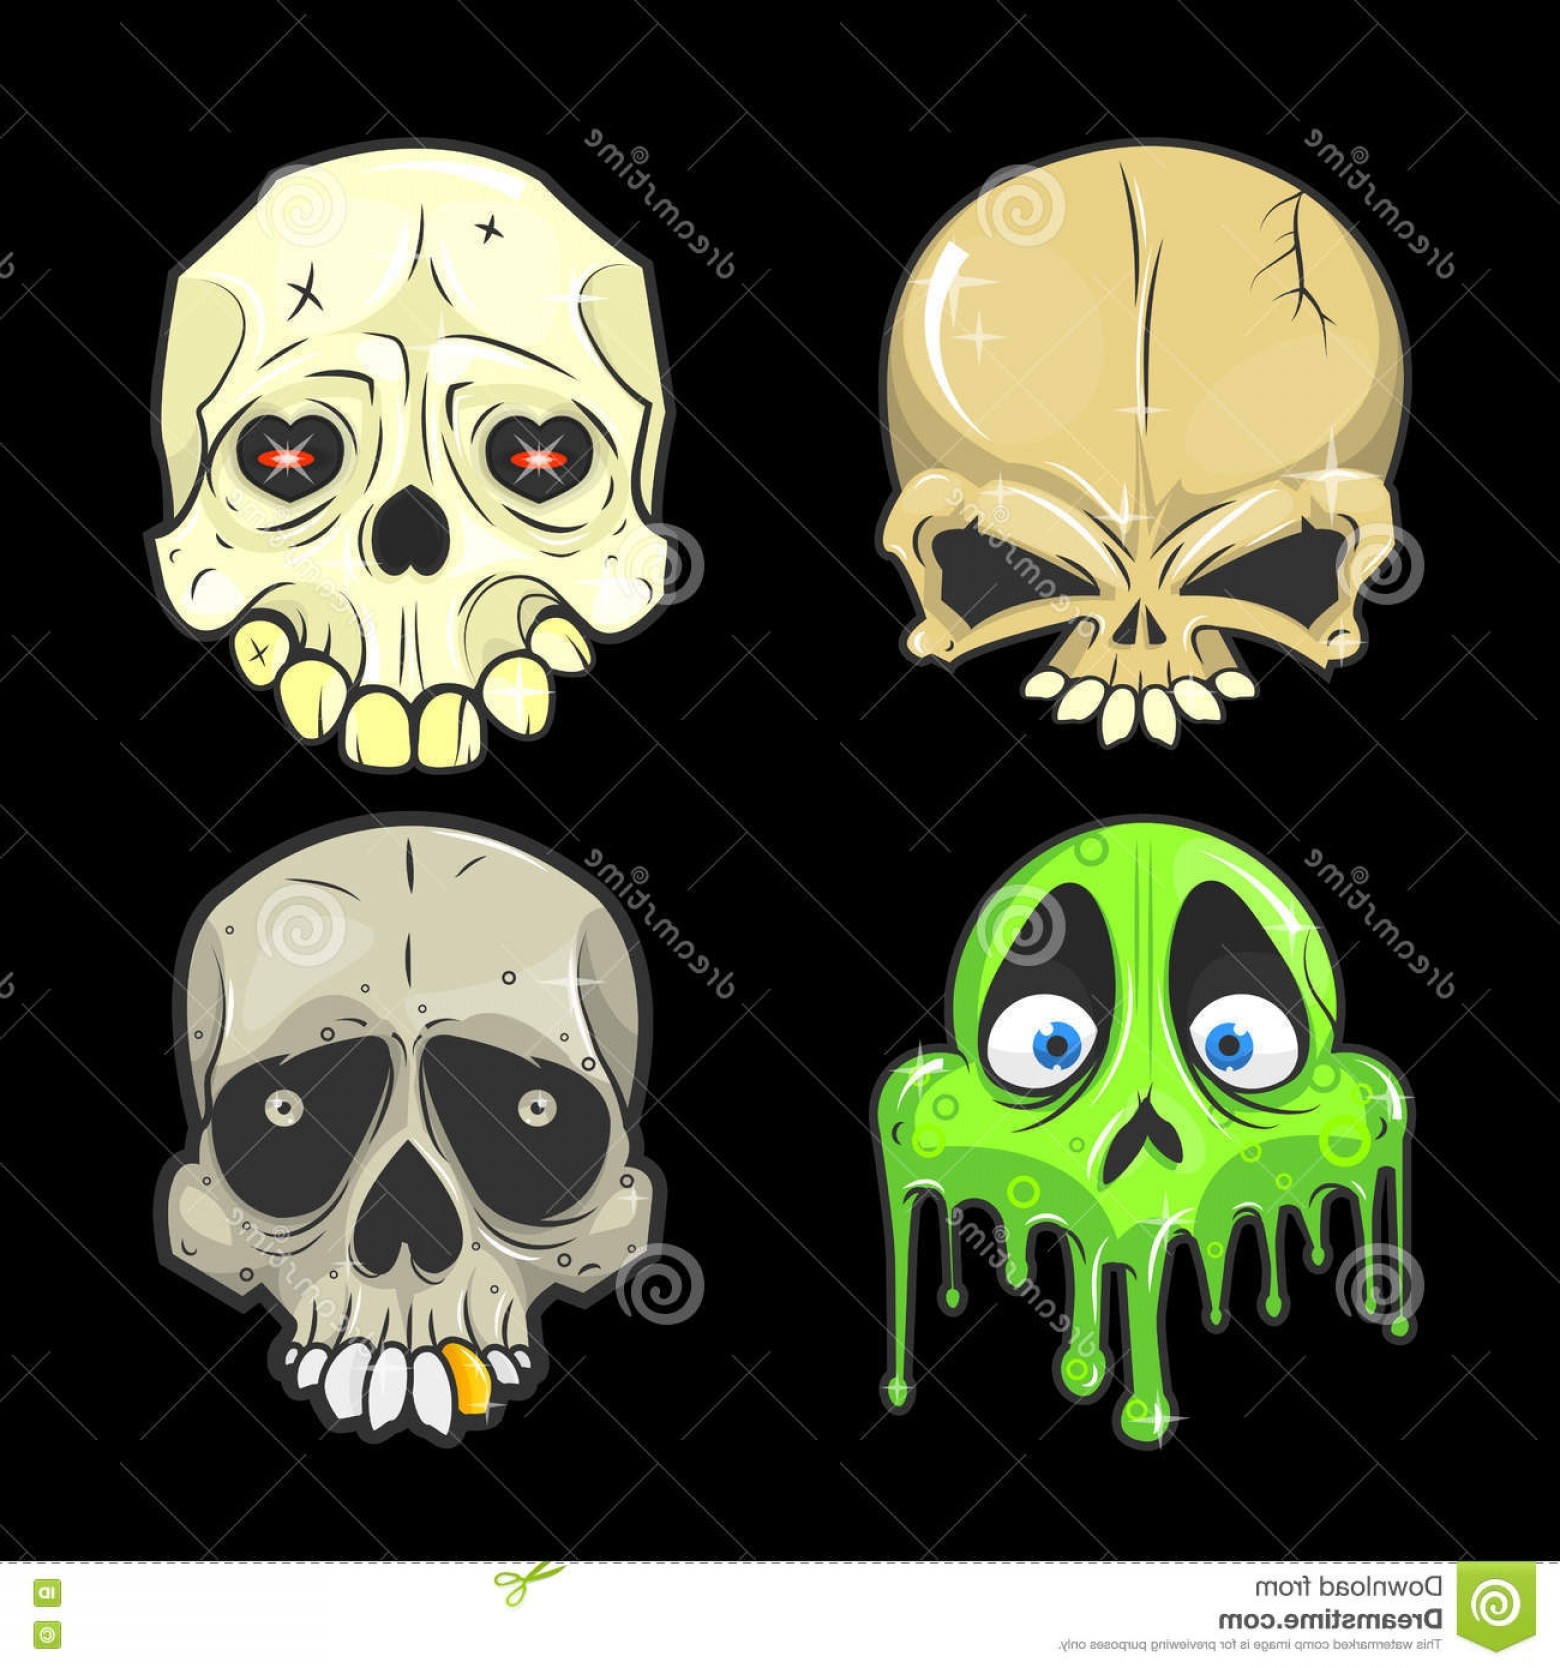 His And Hers Skulls Vector: Stock Illustration Halloween Skull Vector Illustrations Set Skulls Symbol Day Dead Spooky Skeleton Head Flat Design Image